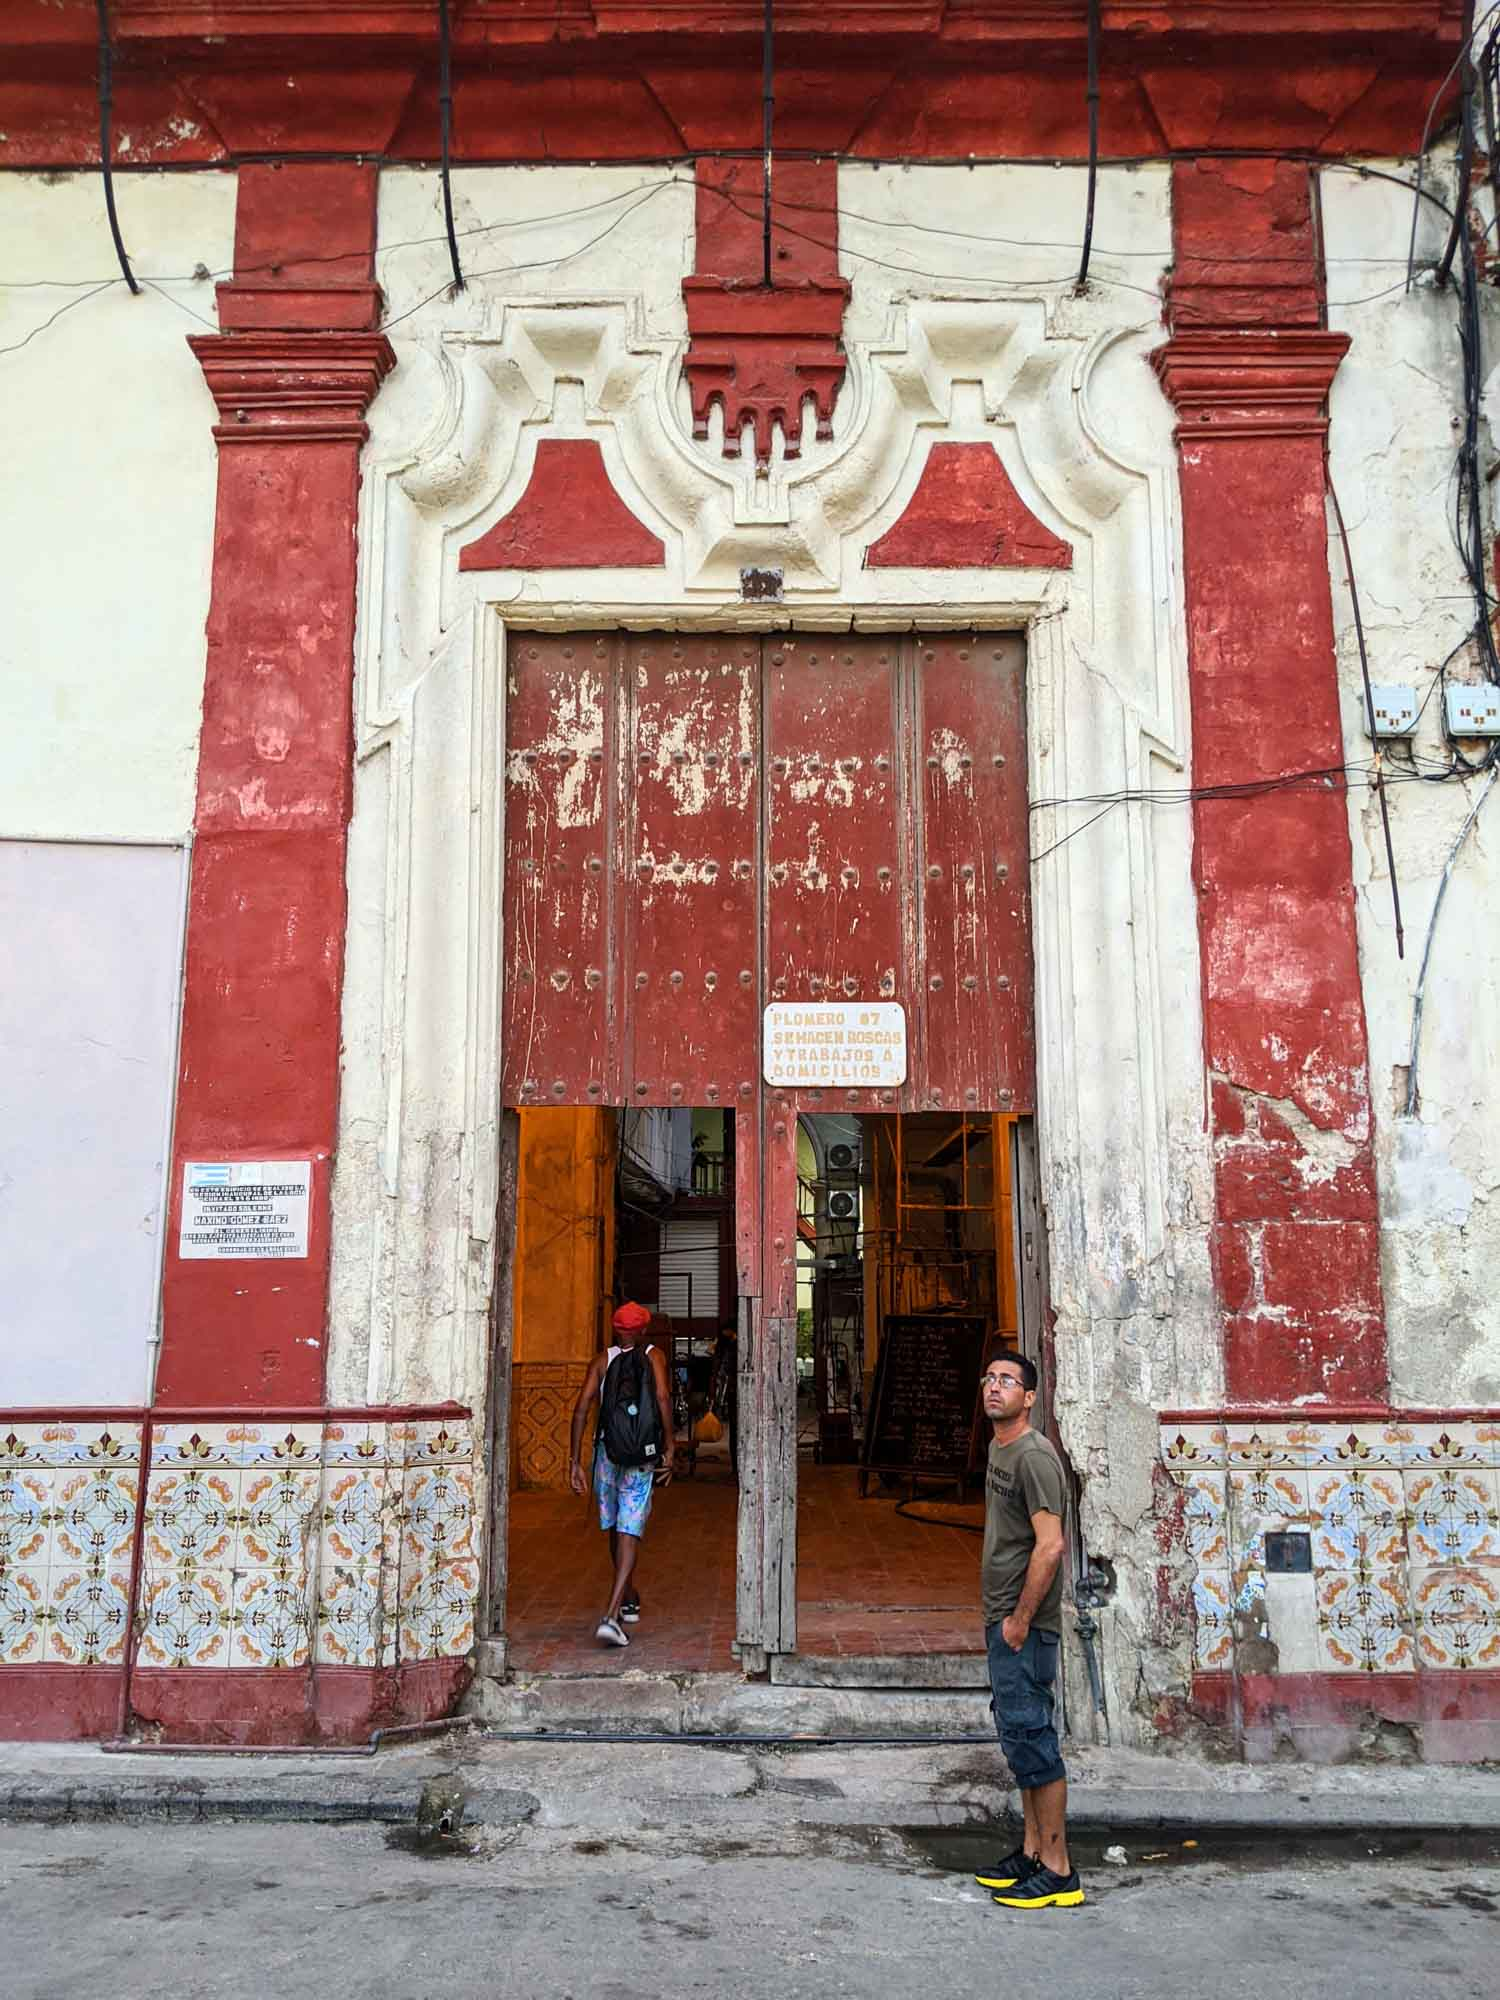 Entrance to Paladar Don Omar, a restaurant in Old Havana